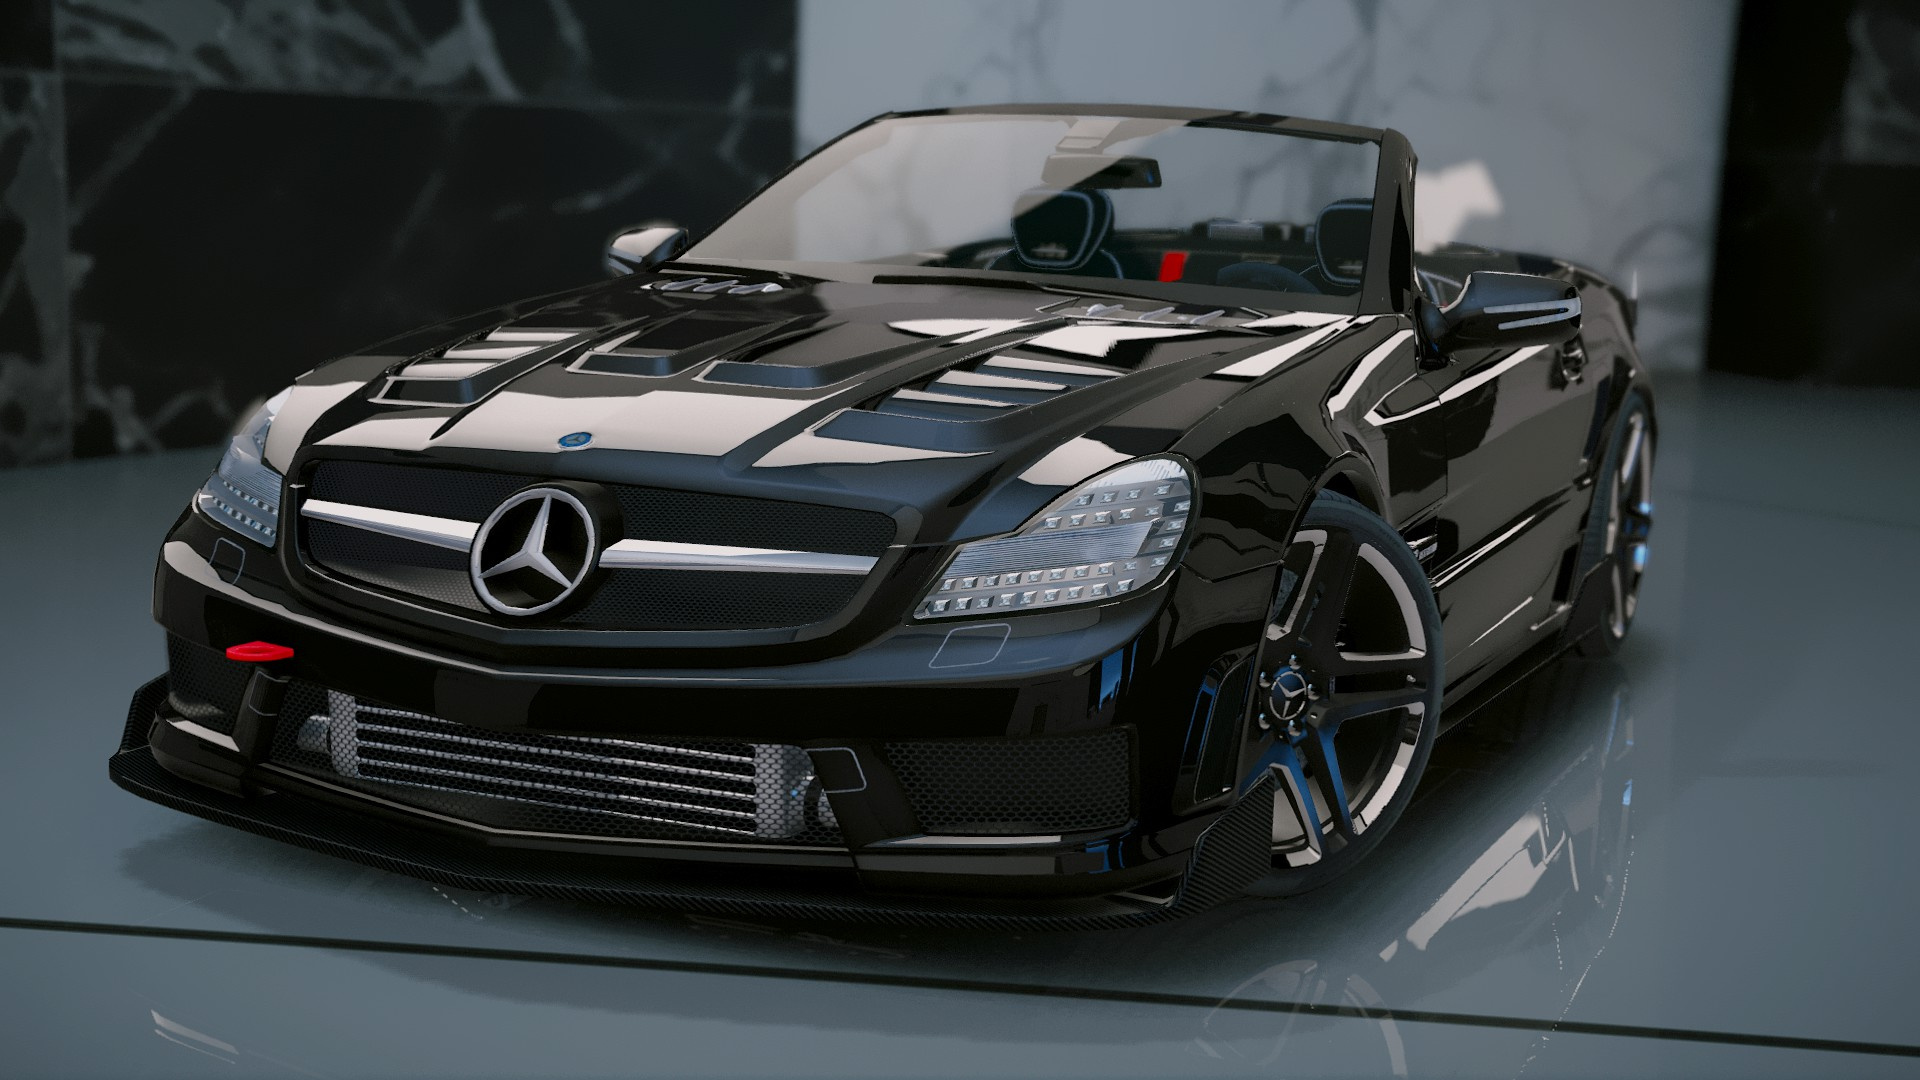 Mercedes benz sl 63 amg add on tuning gta5 for Mercedes benz sl500 amg